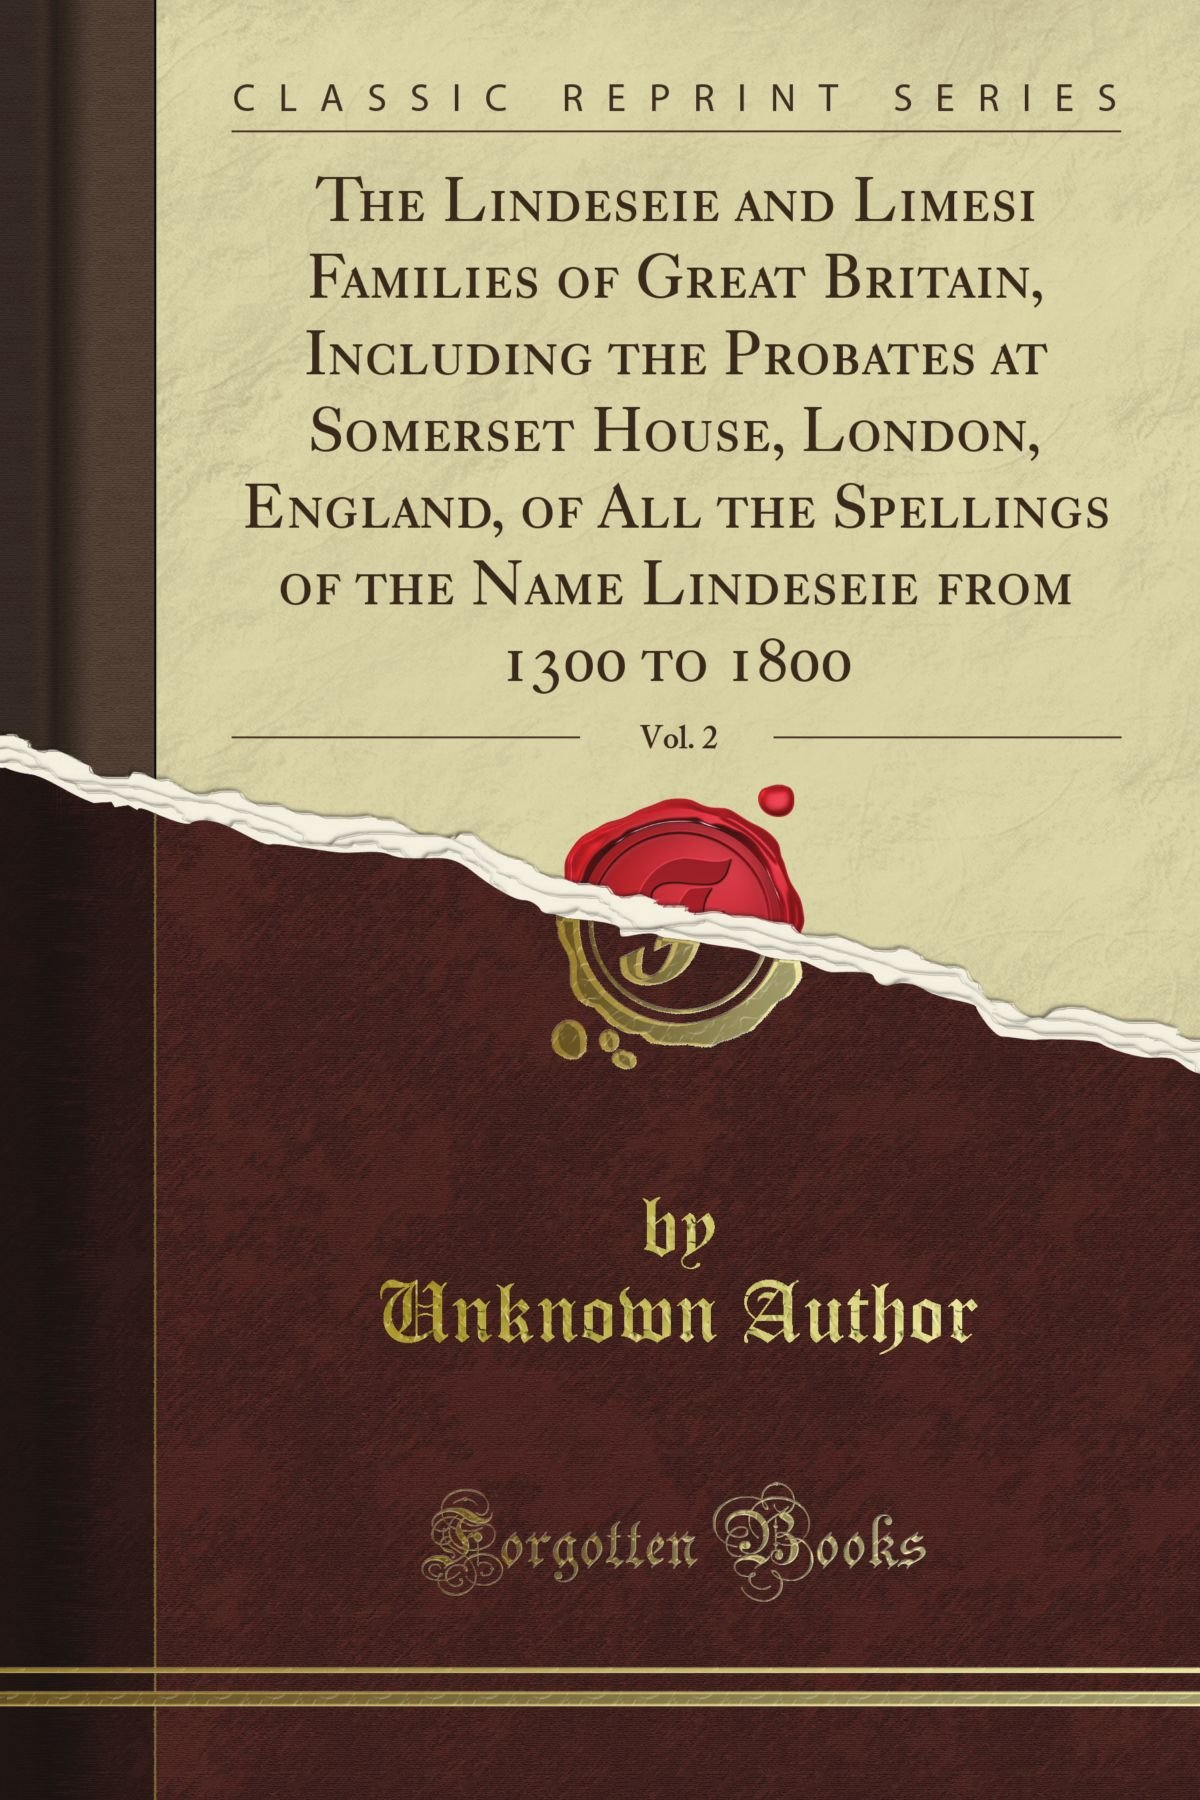 The Lindeseie and Limesi Families of Great Britain, Including the Probates at Somerset House, London, England, of All the Spellings of the Name Lindeseie from 1300 to 1800, Vol. 2 (Classic Reprint) ebook